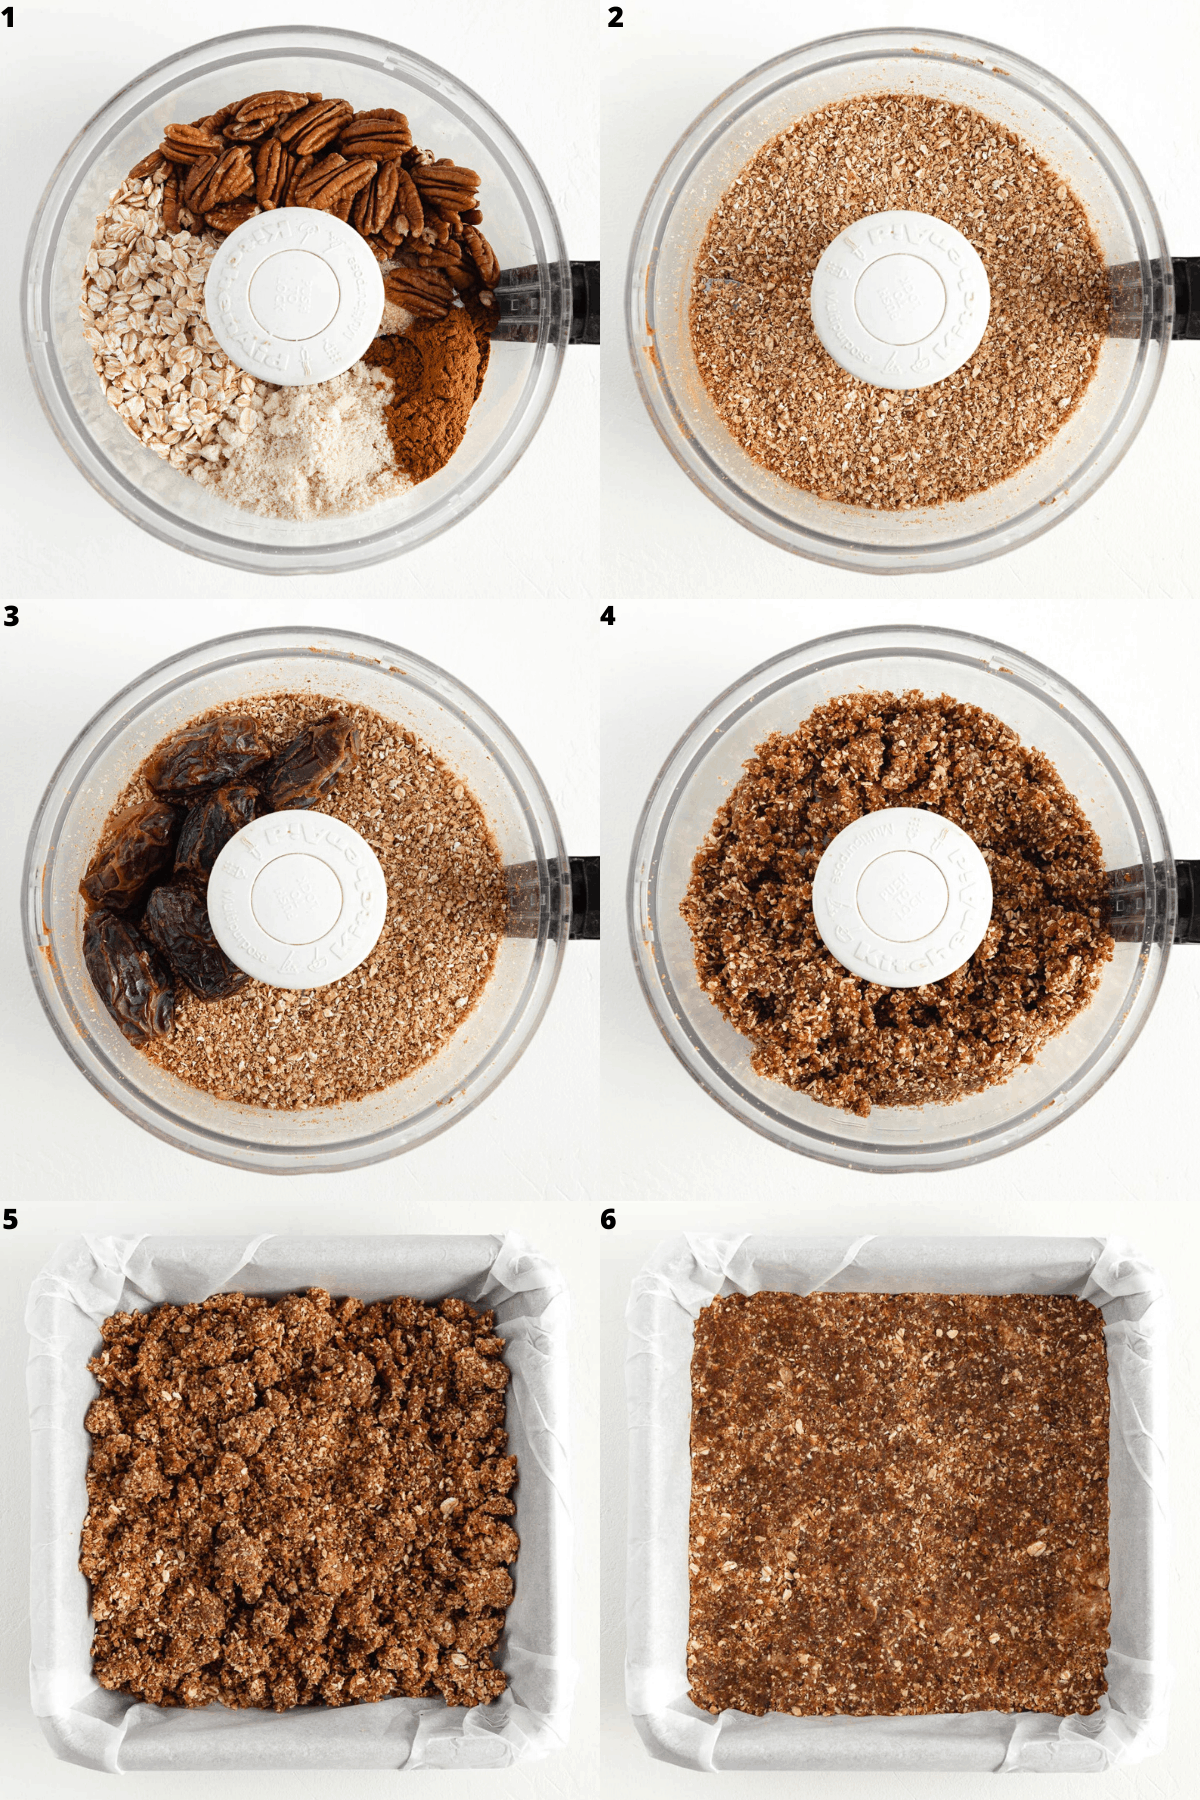 a six part photo collage showing oats, pecans, almond flour, cinnamon, and dates being blended in a food processor, then pressed against the bottom of a baking dish